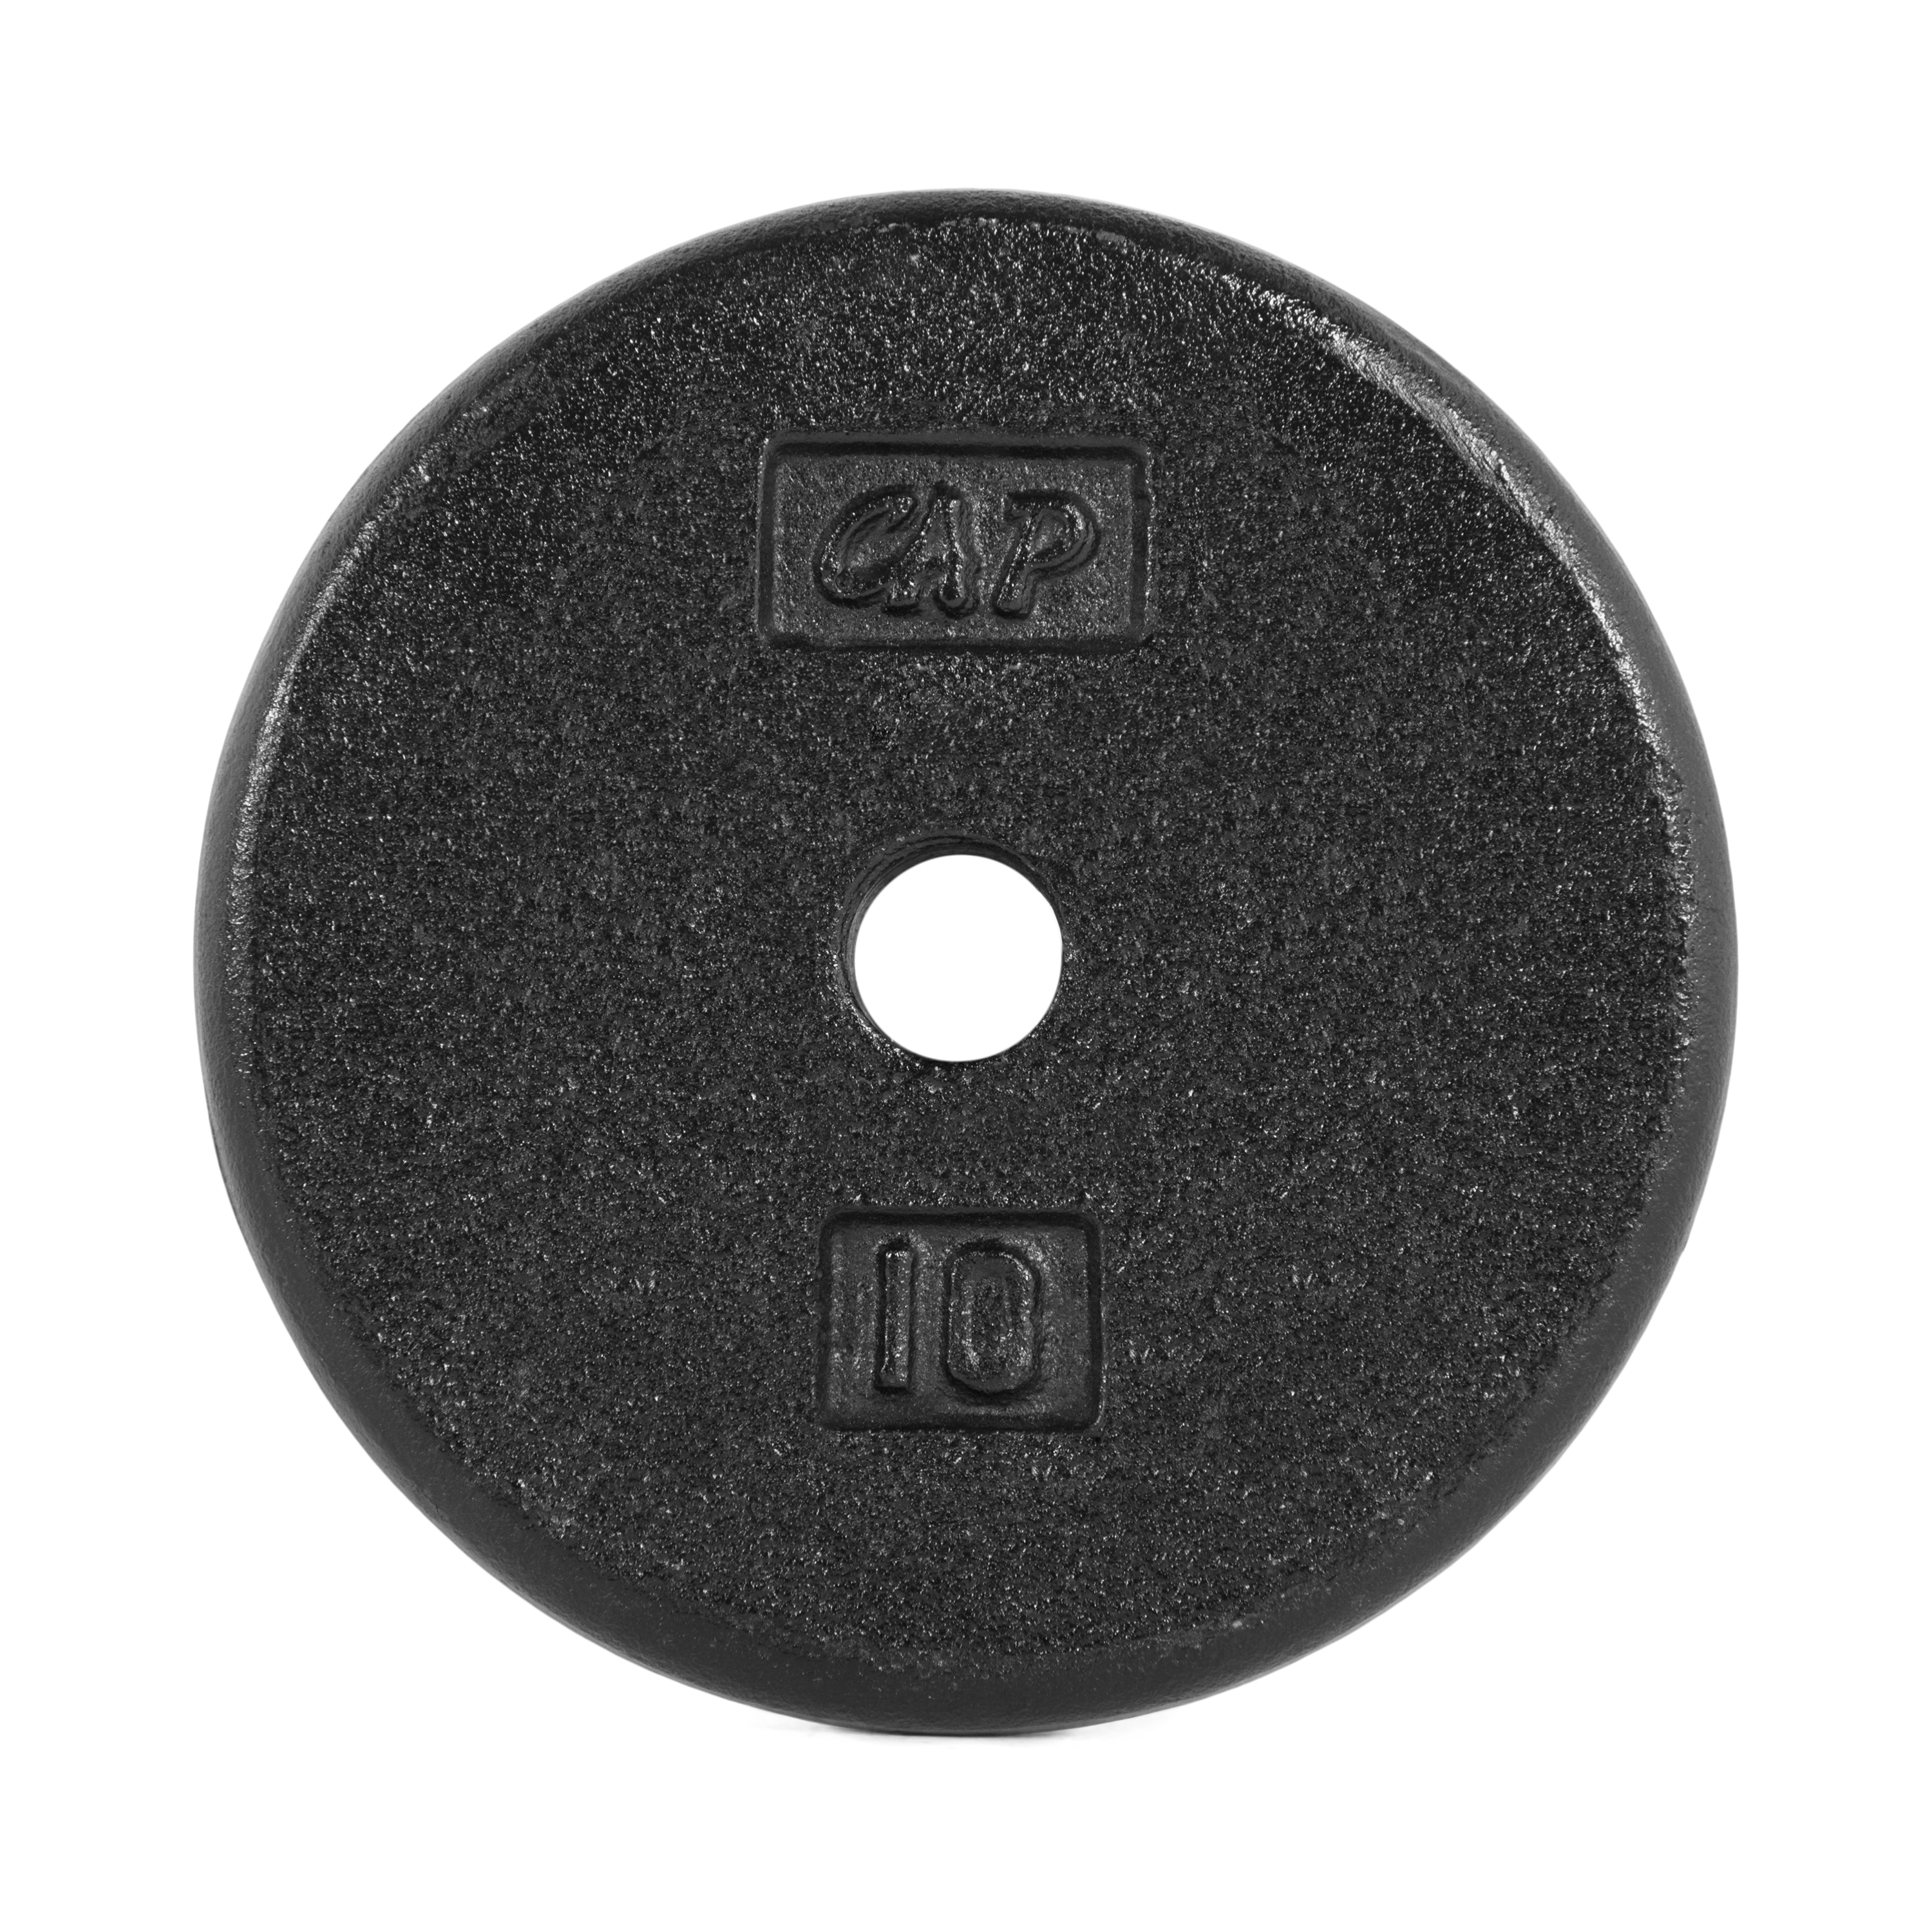 1 Inch Standard Hole 2.5lb Plates 4 CAP Weight Set - 10 Pounds lbs Total